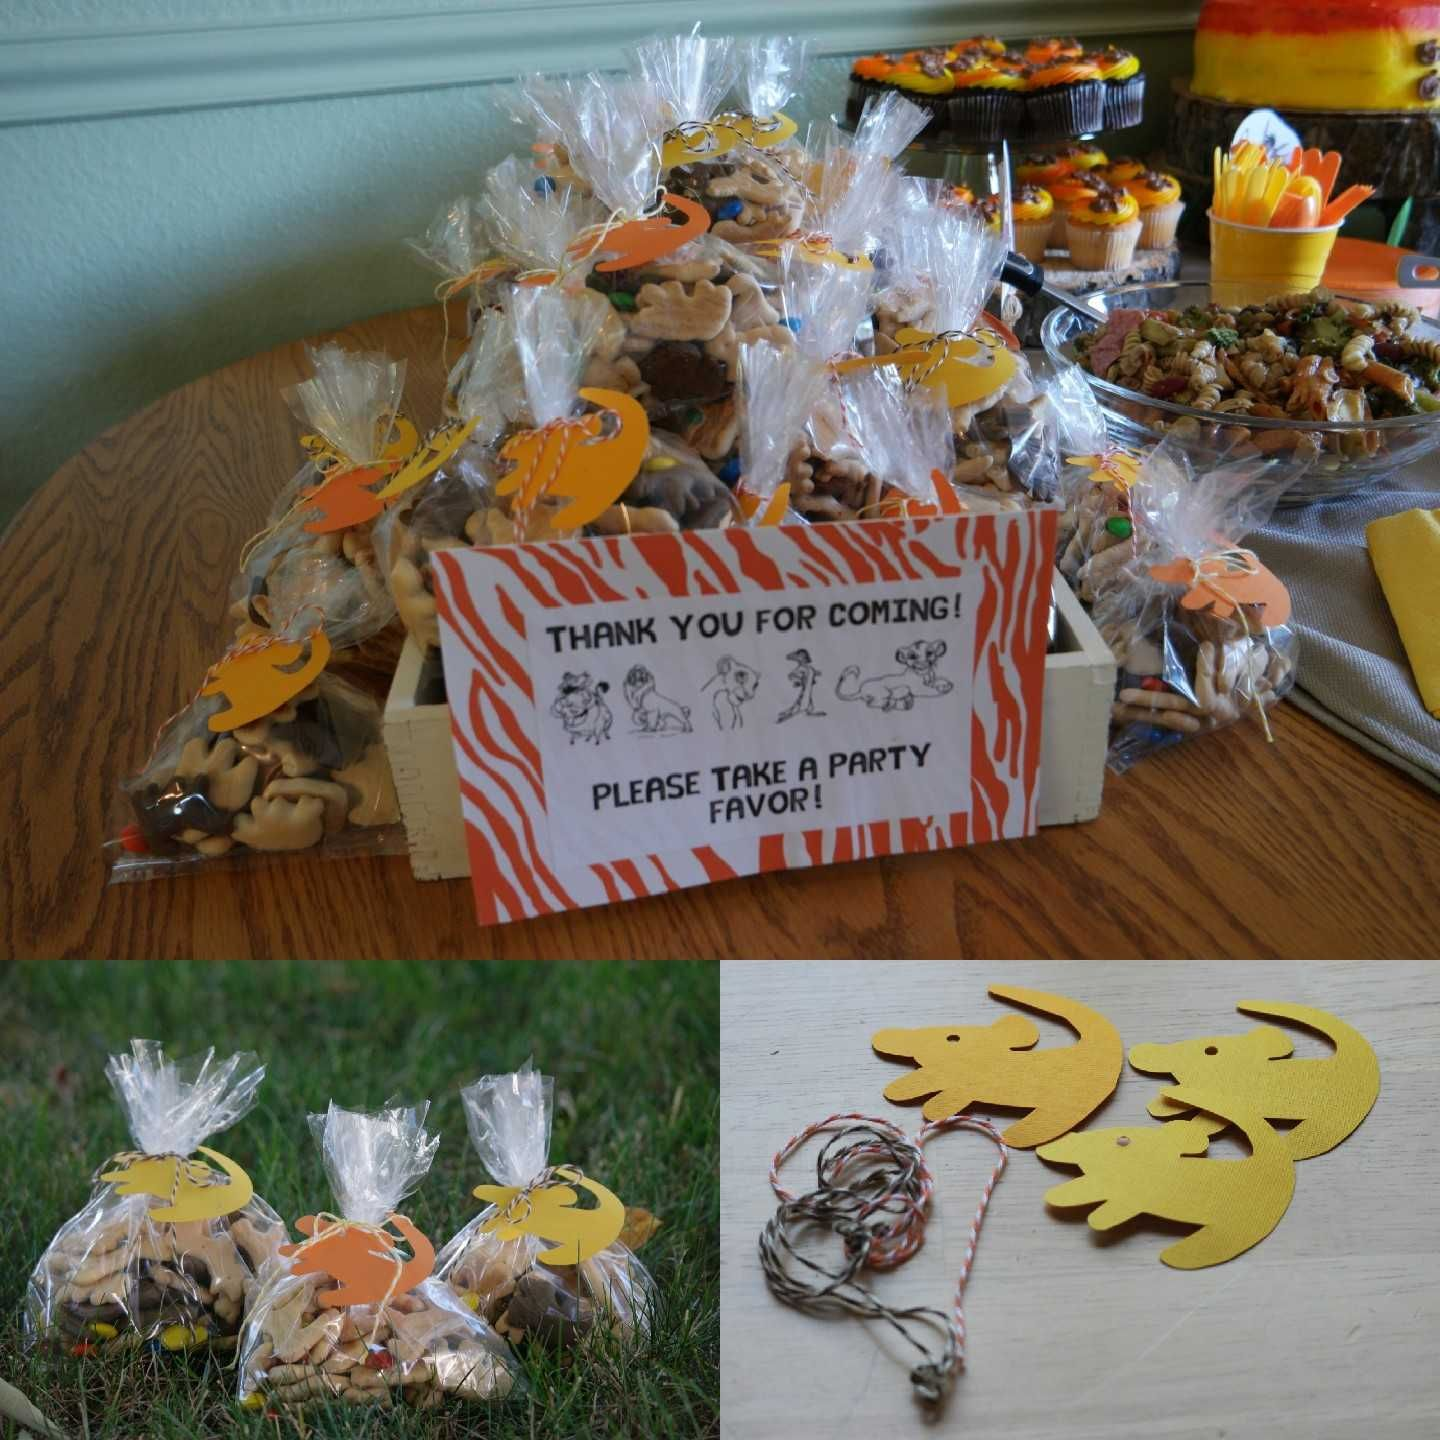 How To Throw An Amazing Lion King Party! The DIY Way